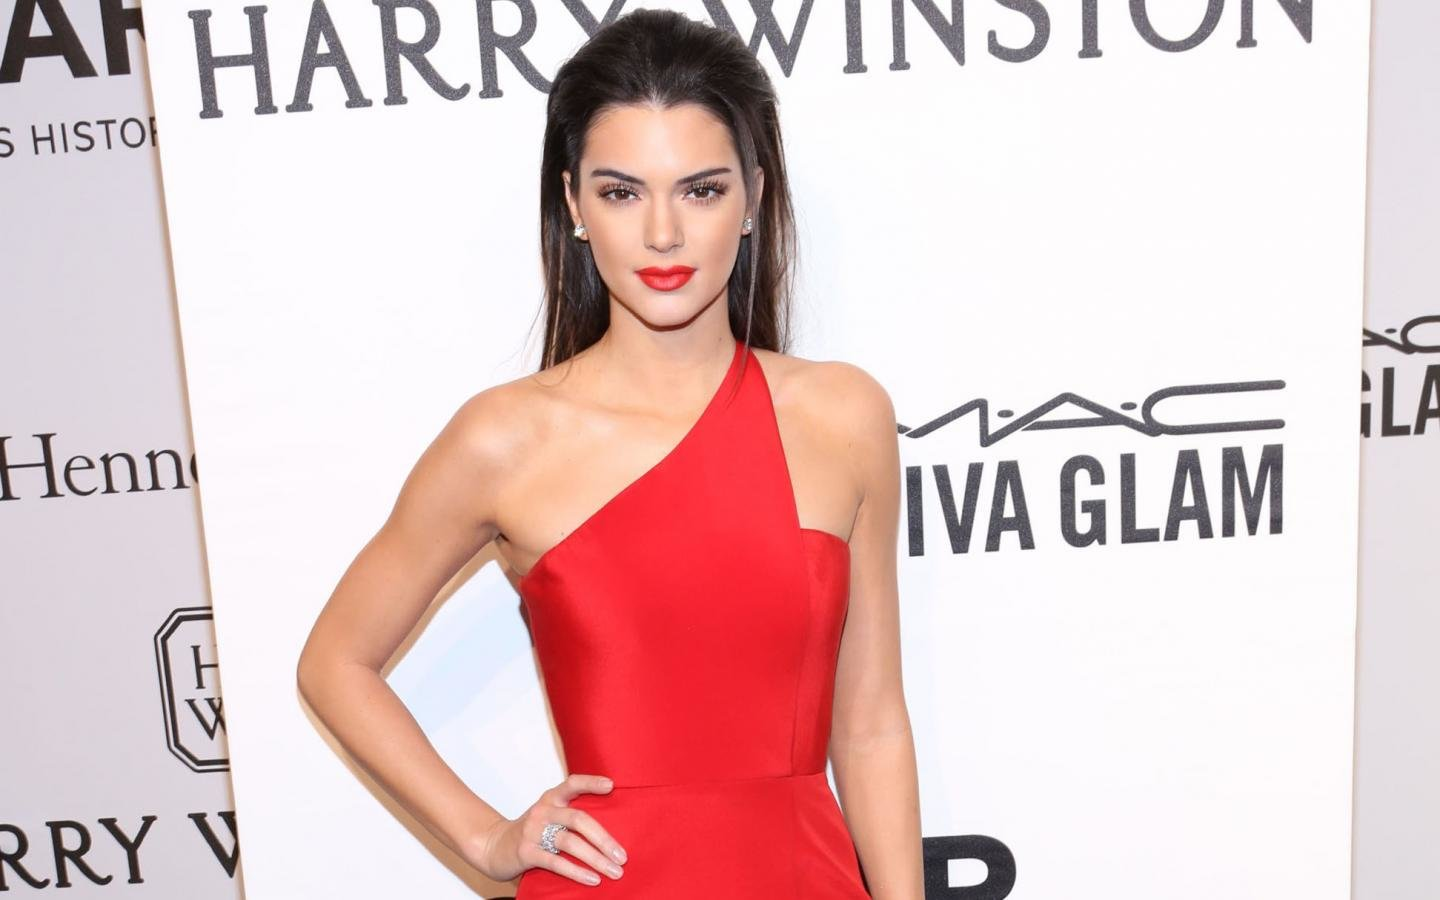 Awesome Kendall Jenner free wallpaper ID:113585 for hd 1440x900 desktop